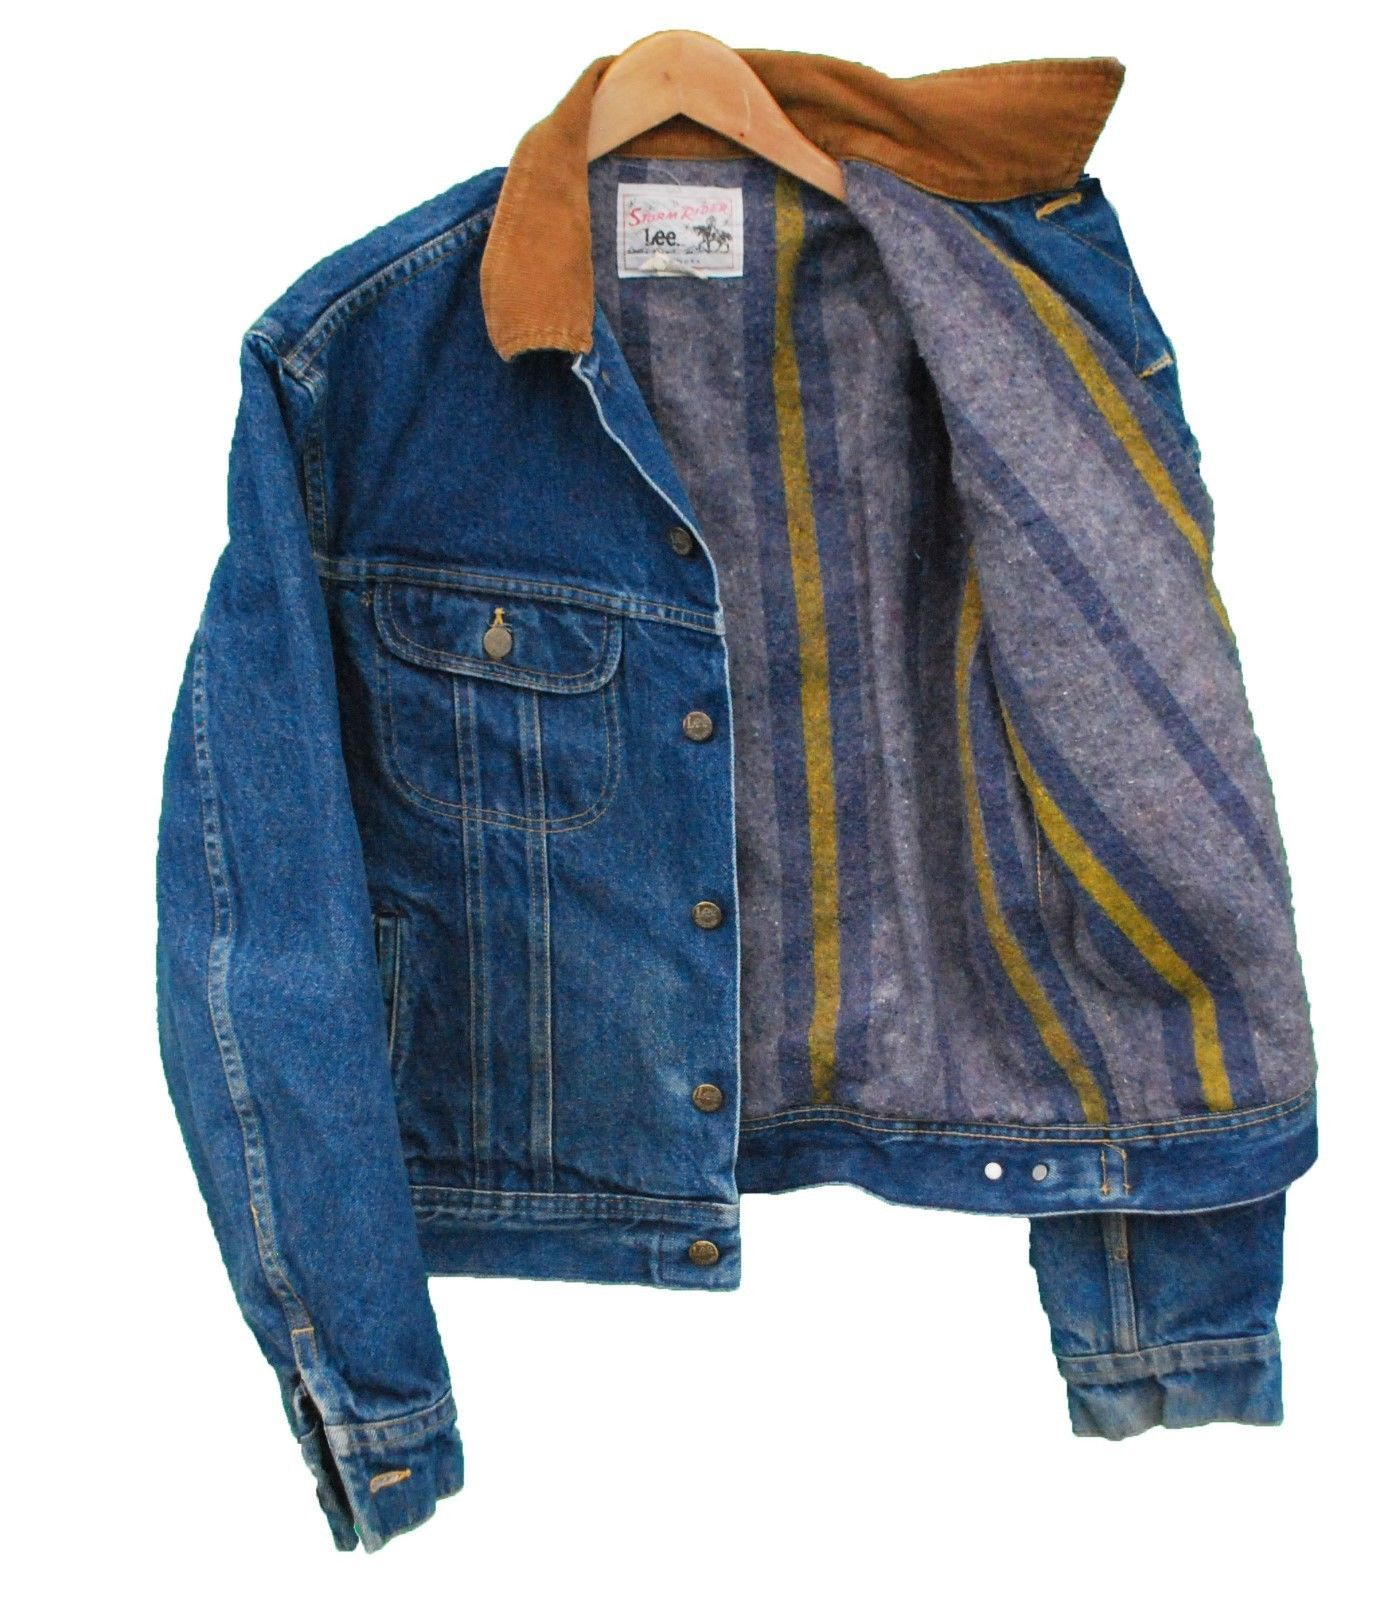 88a993051e9 Vintage LEE Storm Rider Denim Jacket Blanket Lined - L (25082) • £36.00 -  PicClick UK